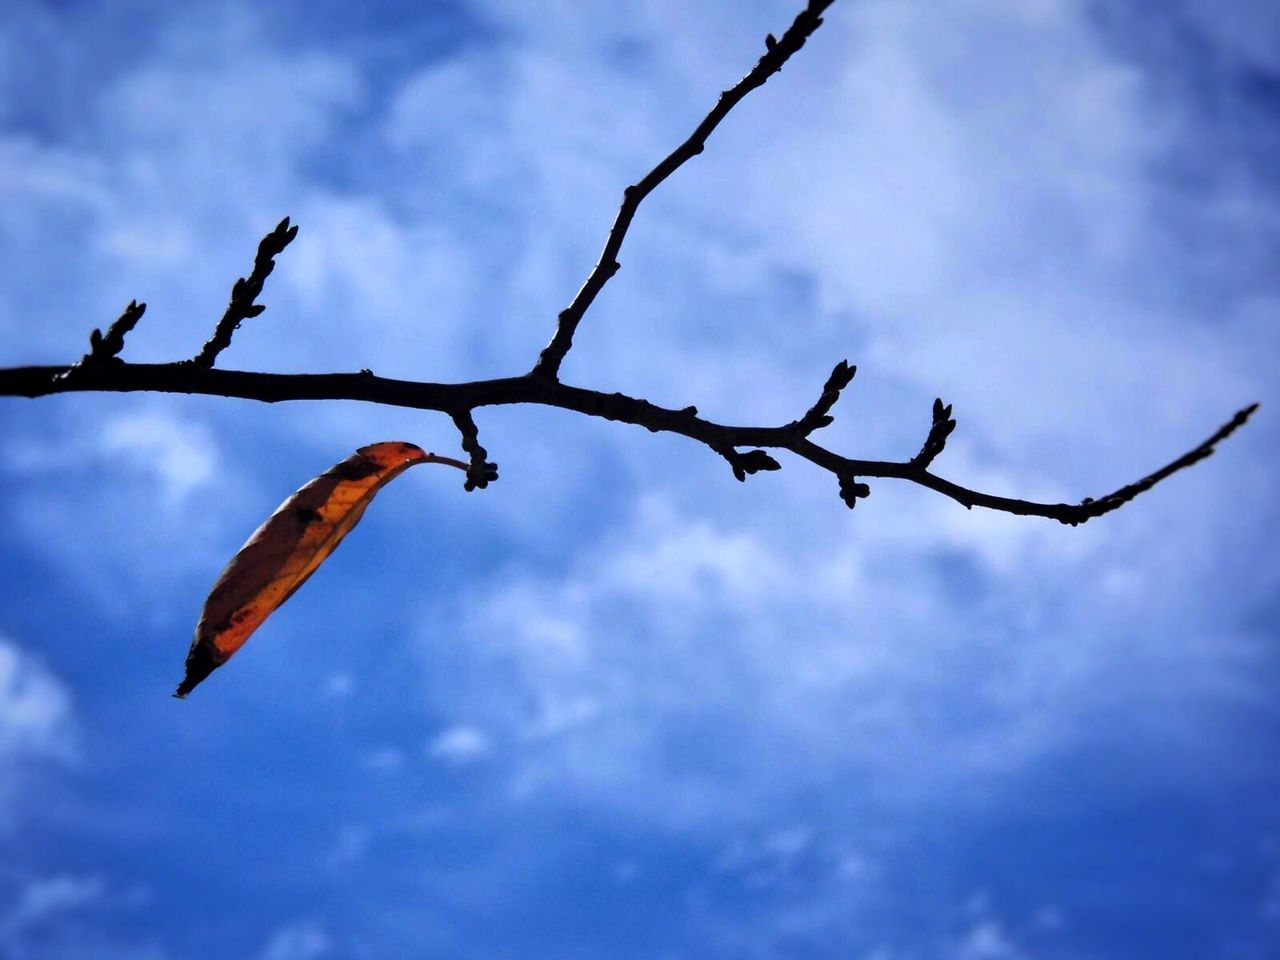 sky, nature, outdoors, no people, day, cloud - sky, low angle view, beauty in nature, growth, close-up